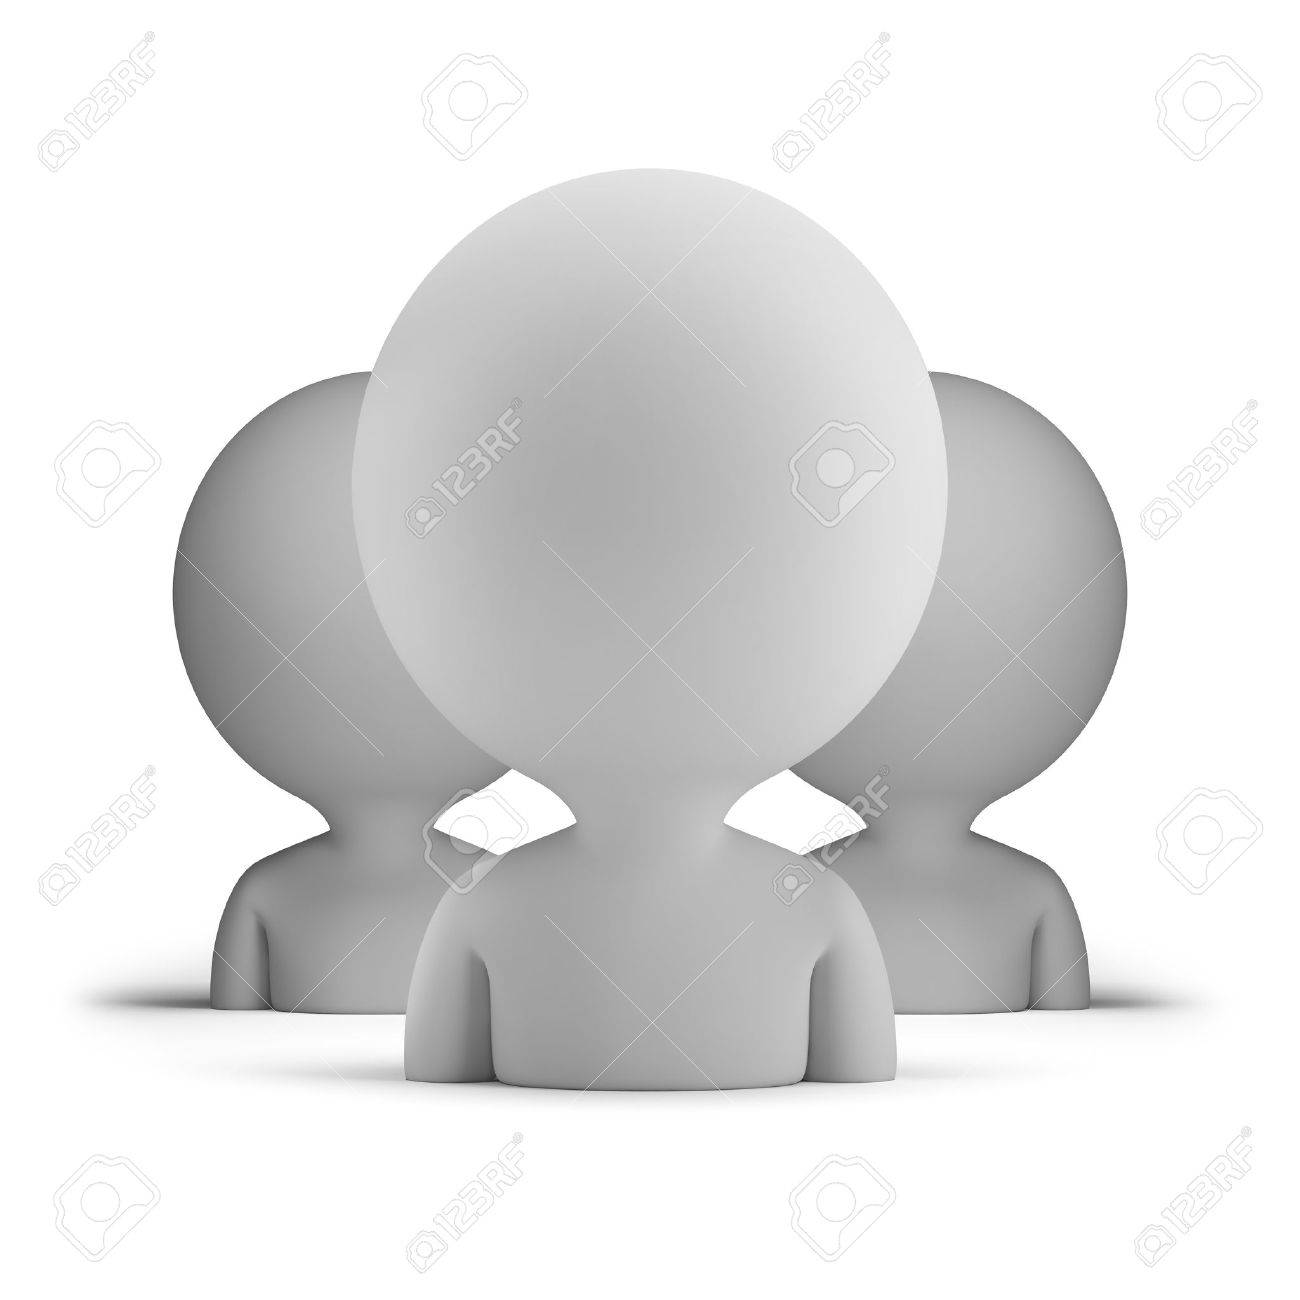 three users  3d small person  3d image  Isolated white background Stock Photo - 14723567